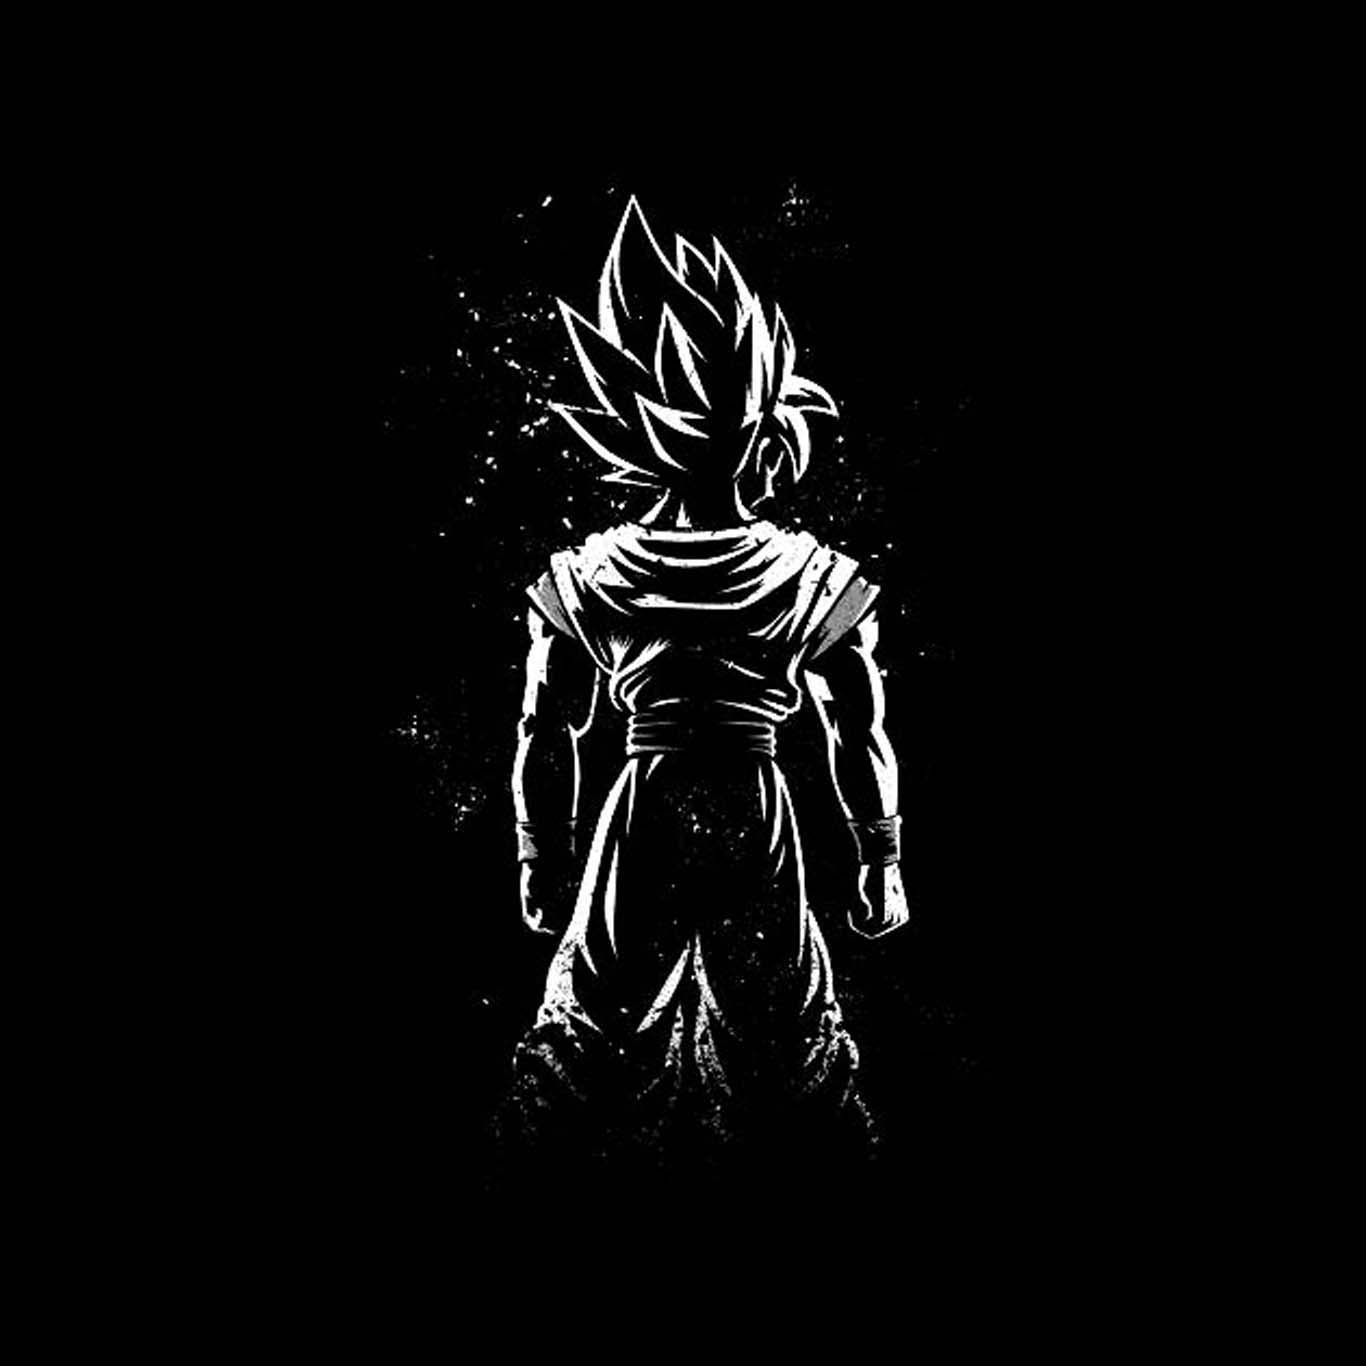 Dragon Ball Black Wallpapers Top Free Dragon Ball Black Backgrounds Wallpaperaccess